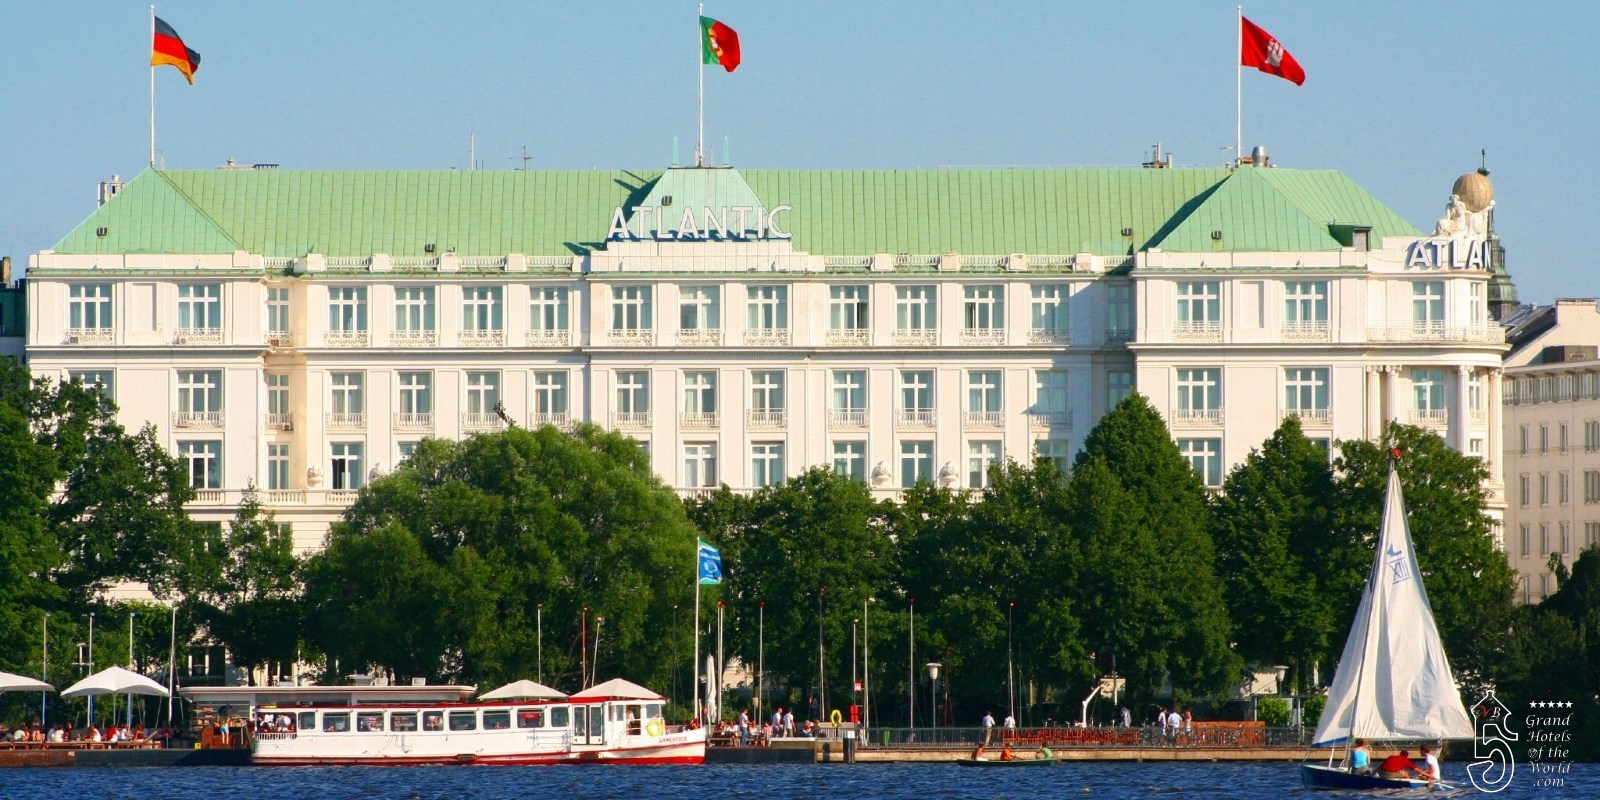 Hotel Atlantic in Hamburg by Kempinski